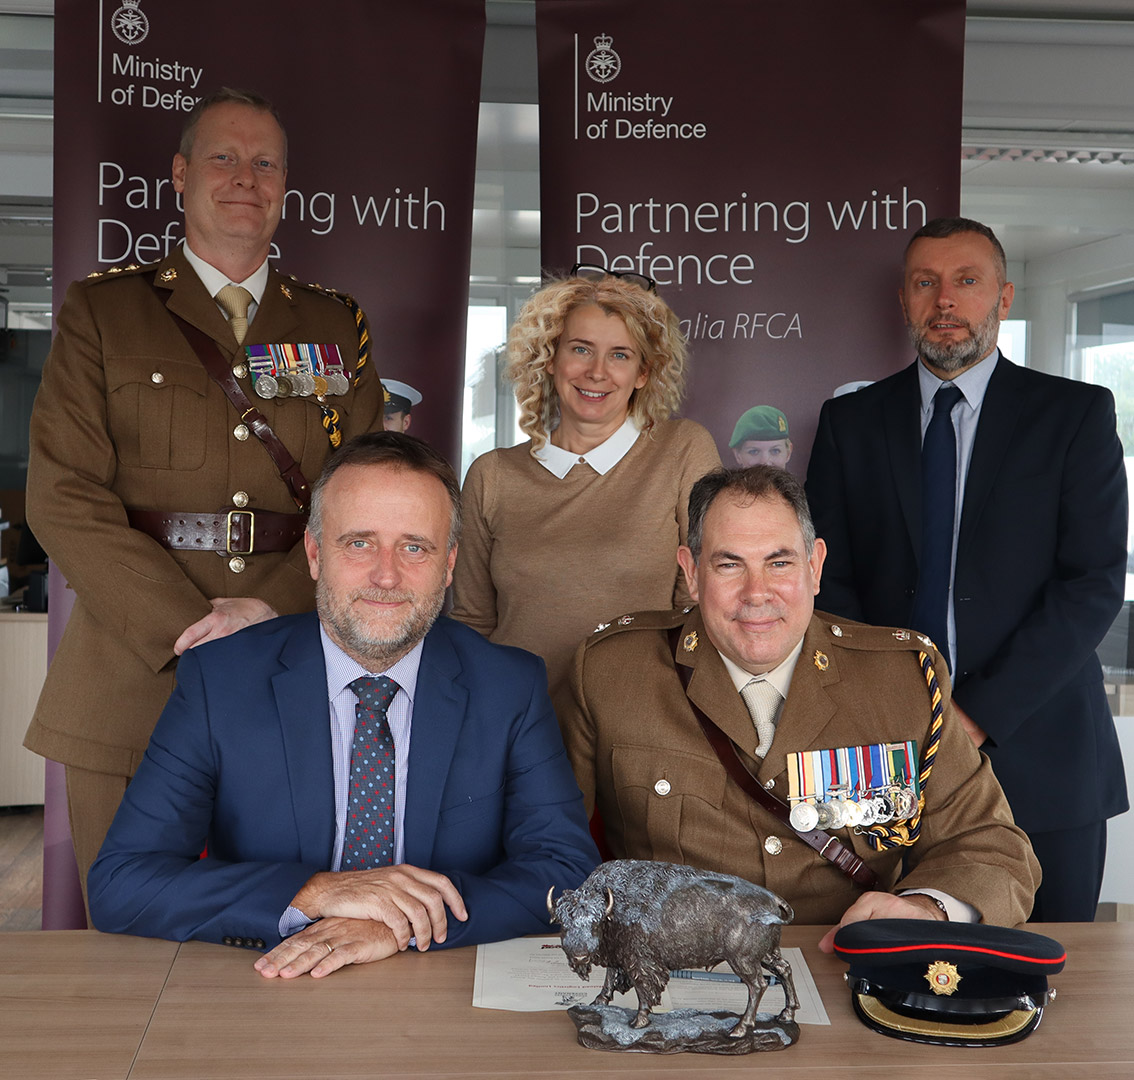 Back L to R: Capt Christian Hughes, 158 Regiment, Royal Logistic Corps; Julie Feltwell, Buffaload Managing Director; Julian Boulton, Compliance Director. Seated L and R: Ian Perks, Business Development Director; Lt Col Andrew Gifford, CO 158 Regiment, RLC